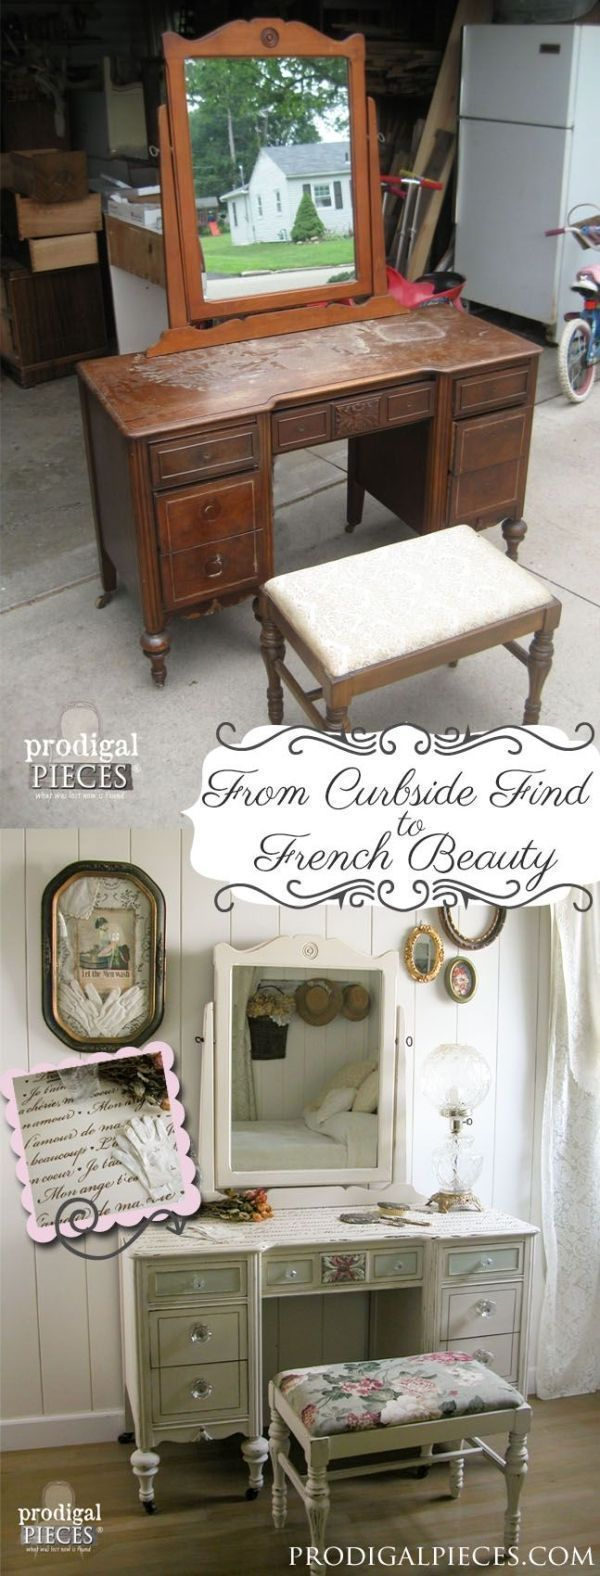 From curbside to French beauty - Shabby Chic Furniture using French quotes and lettering stencils - Royal Design Studio designer stencils for furniture makeover DIY projects by deborah #shabbychicfurnituremakeover